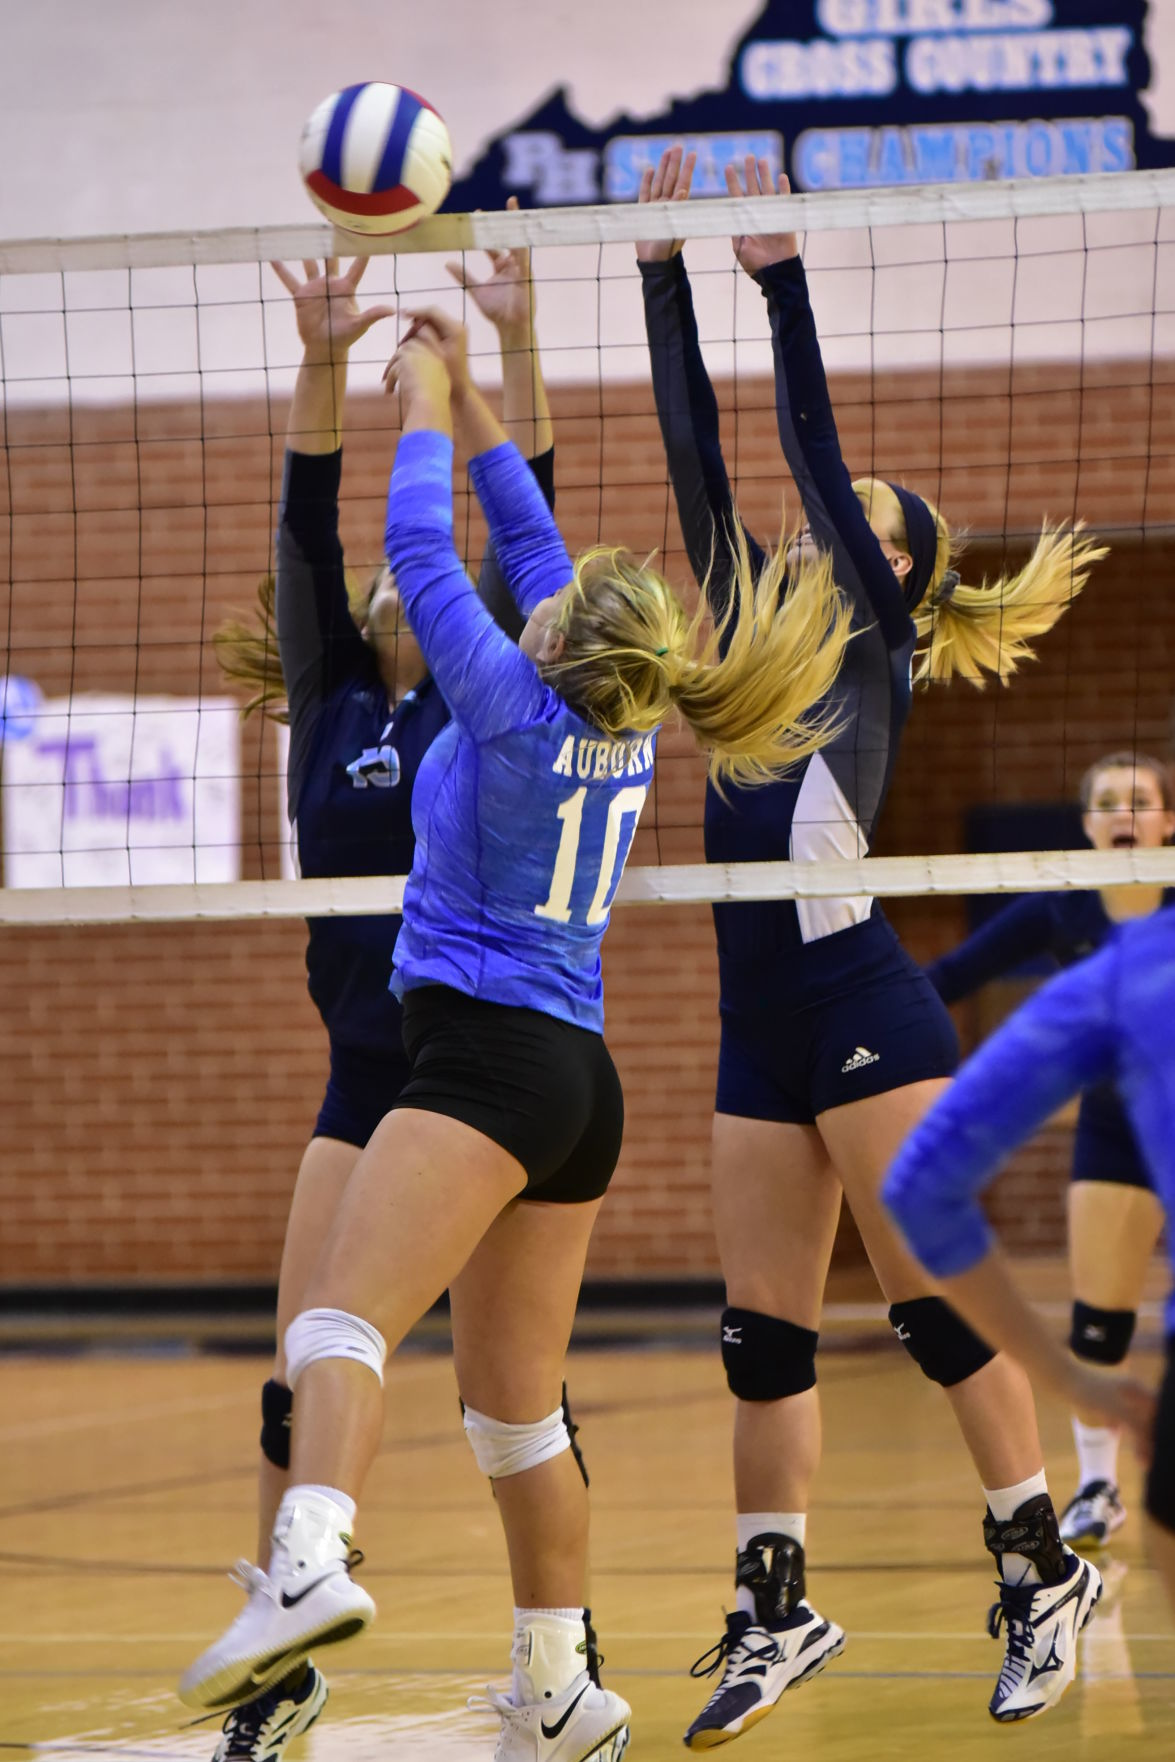 Hs Volleyball Ph Glade Spring Beats Auburn In 4 Sets To Reach